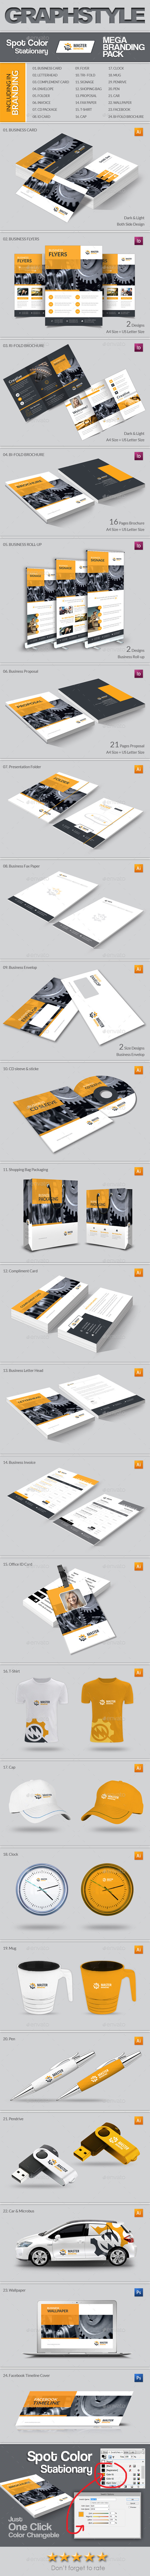 GraphicRiver Master Business Mega Branding Pack 10133475